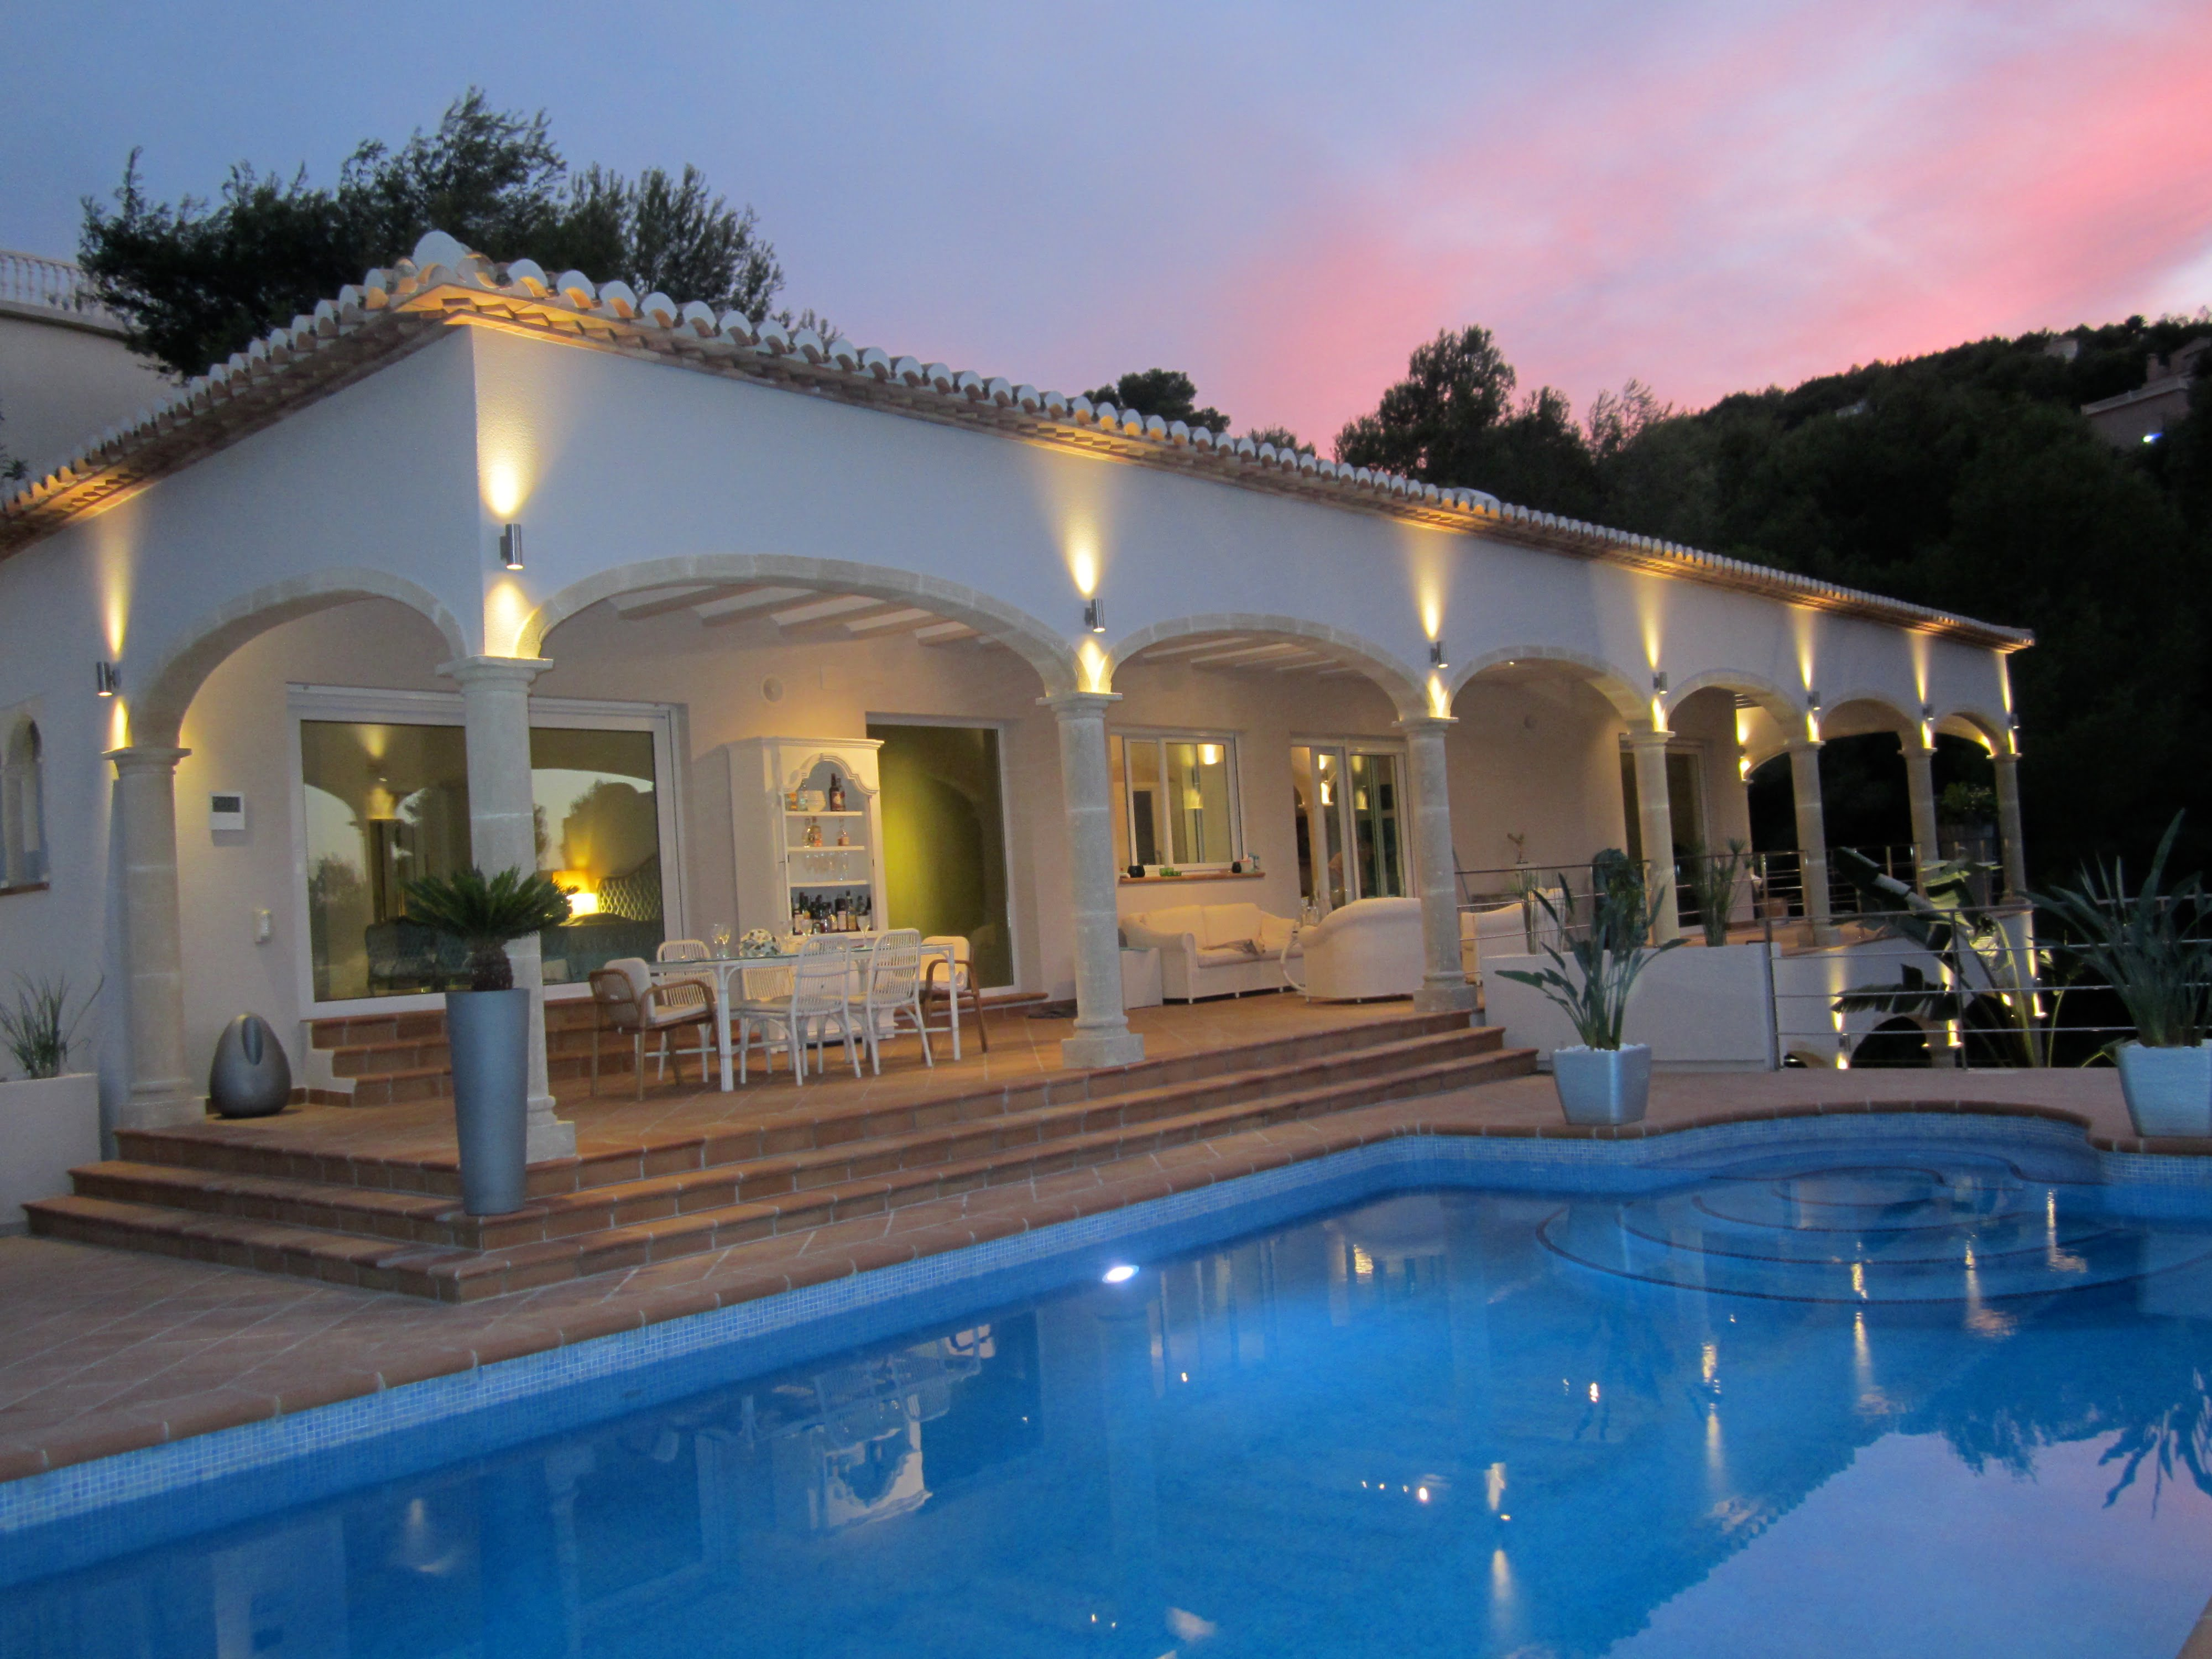 Holiday rentals in Spain